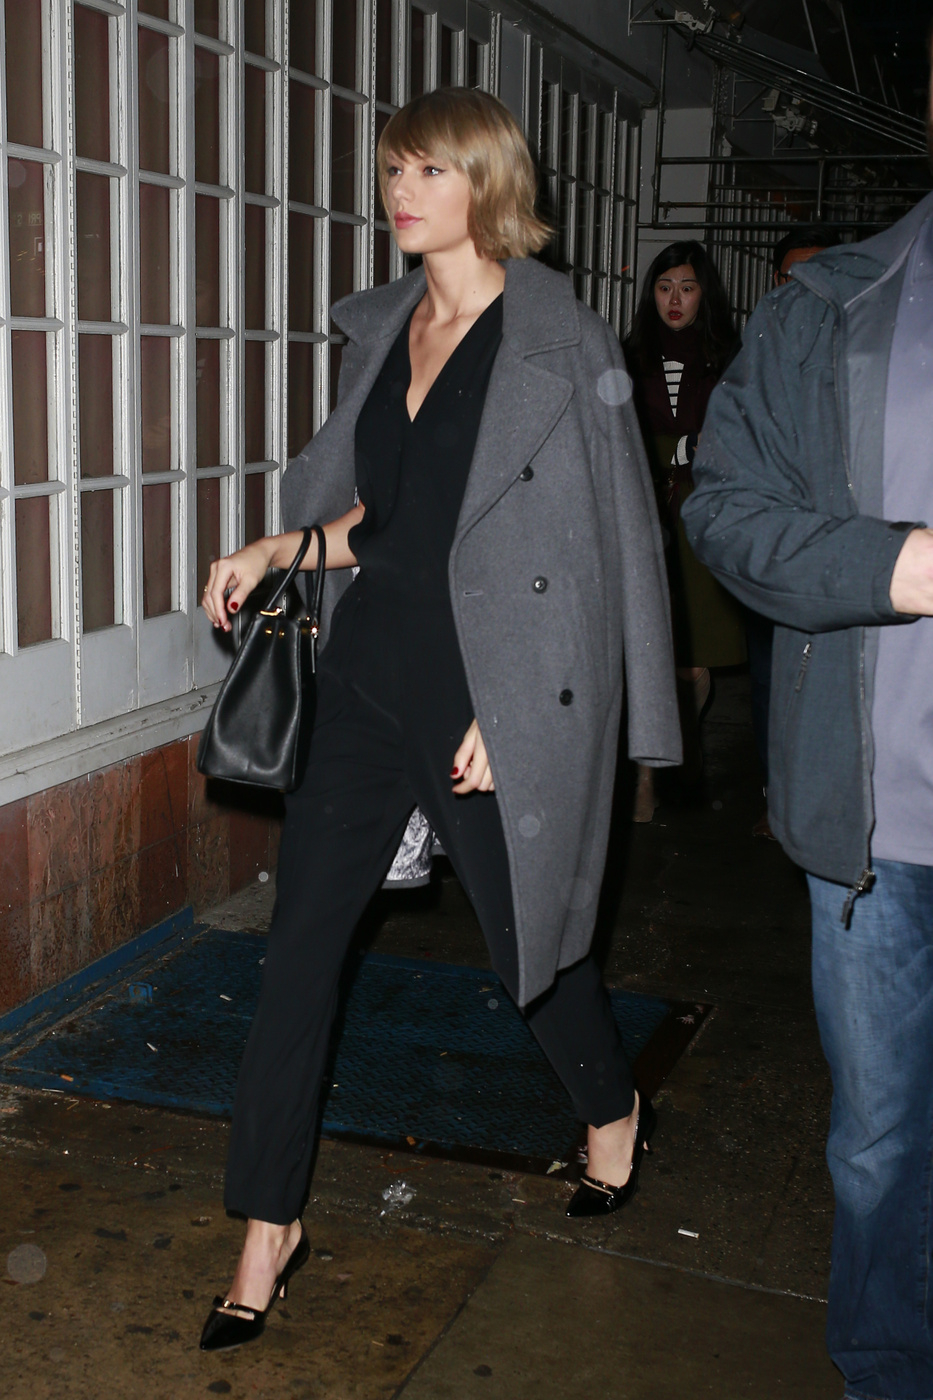 Taylor Swift Jumpsuit and Peacoat Look for Less